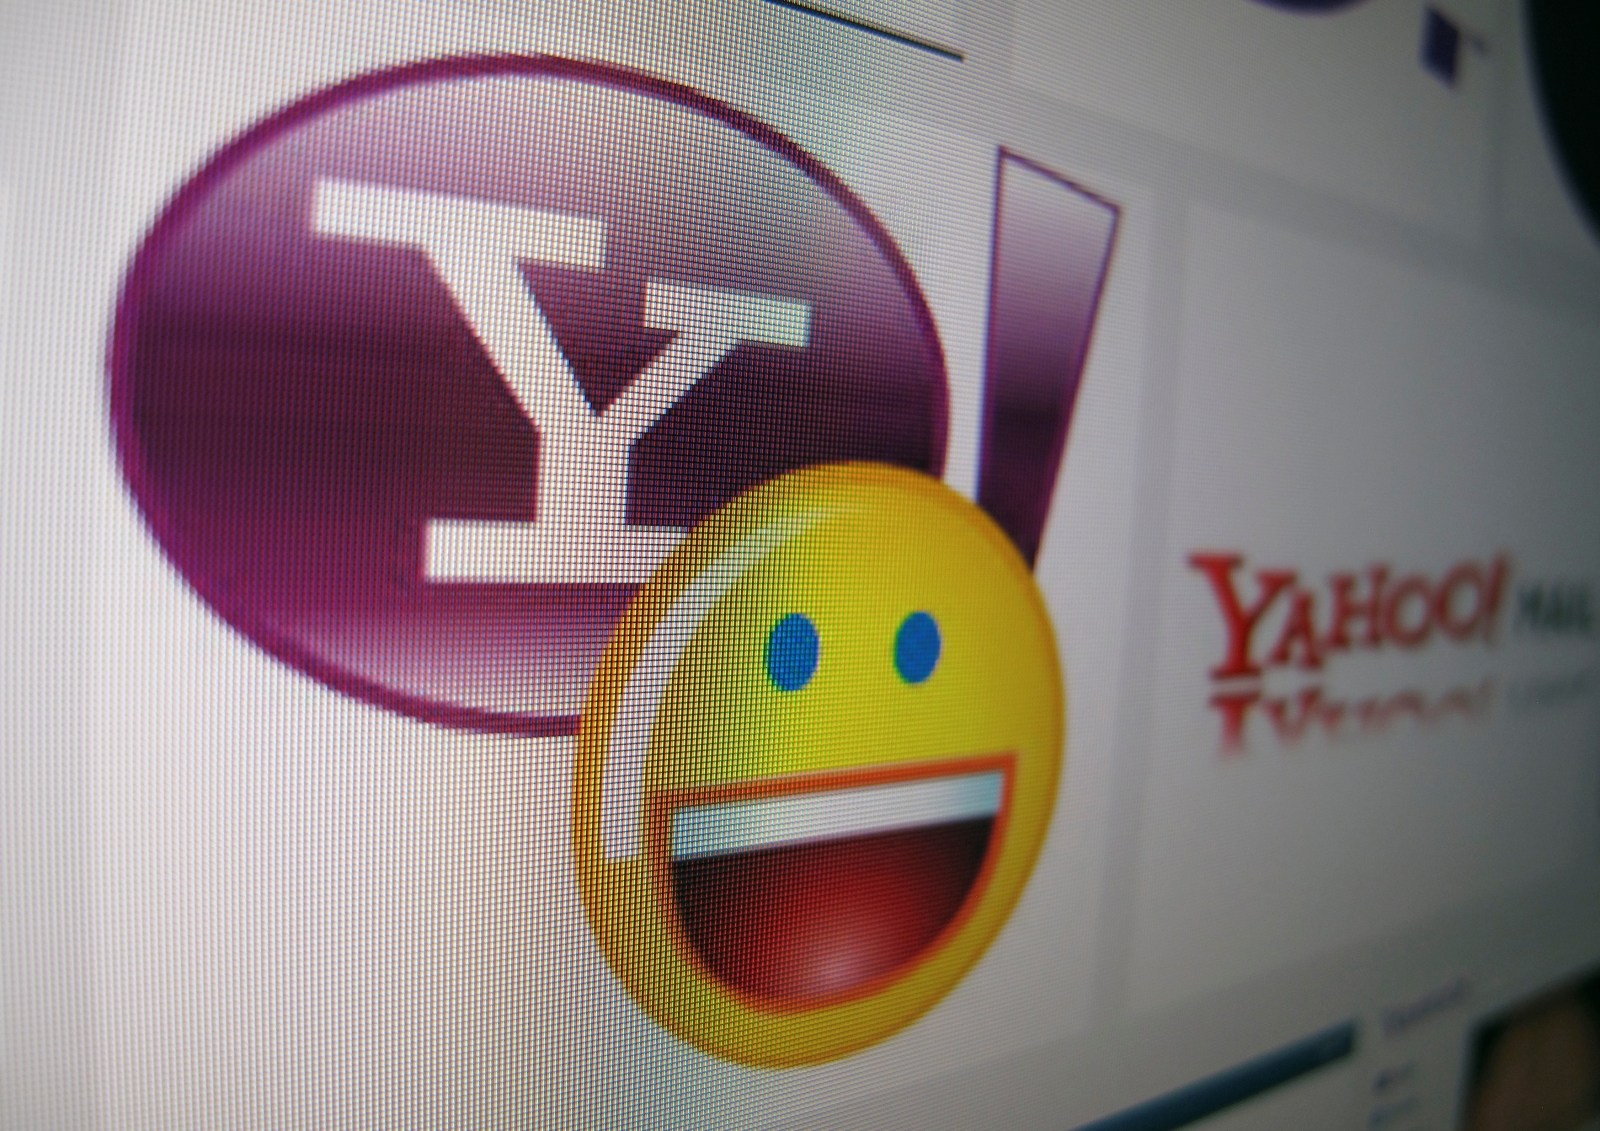 Yahoo to finally log out of its legacy Messenger by August